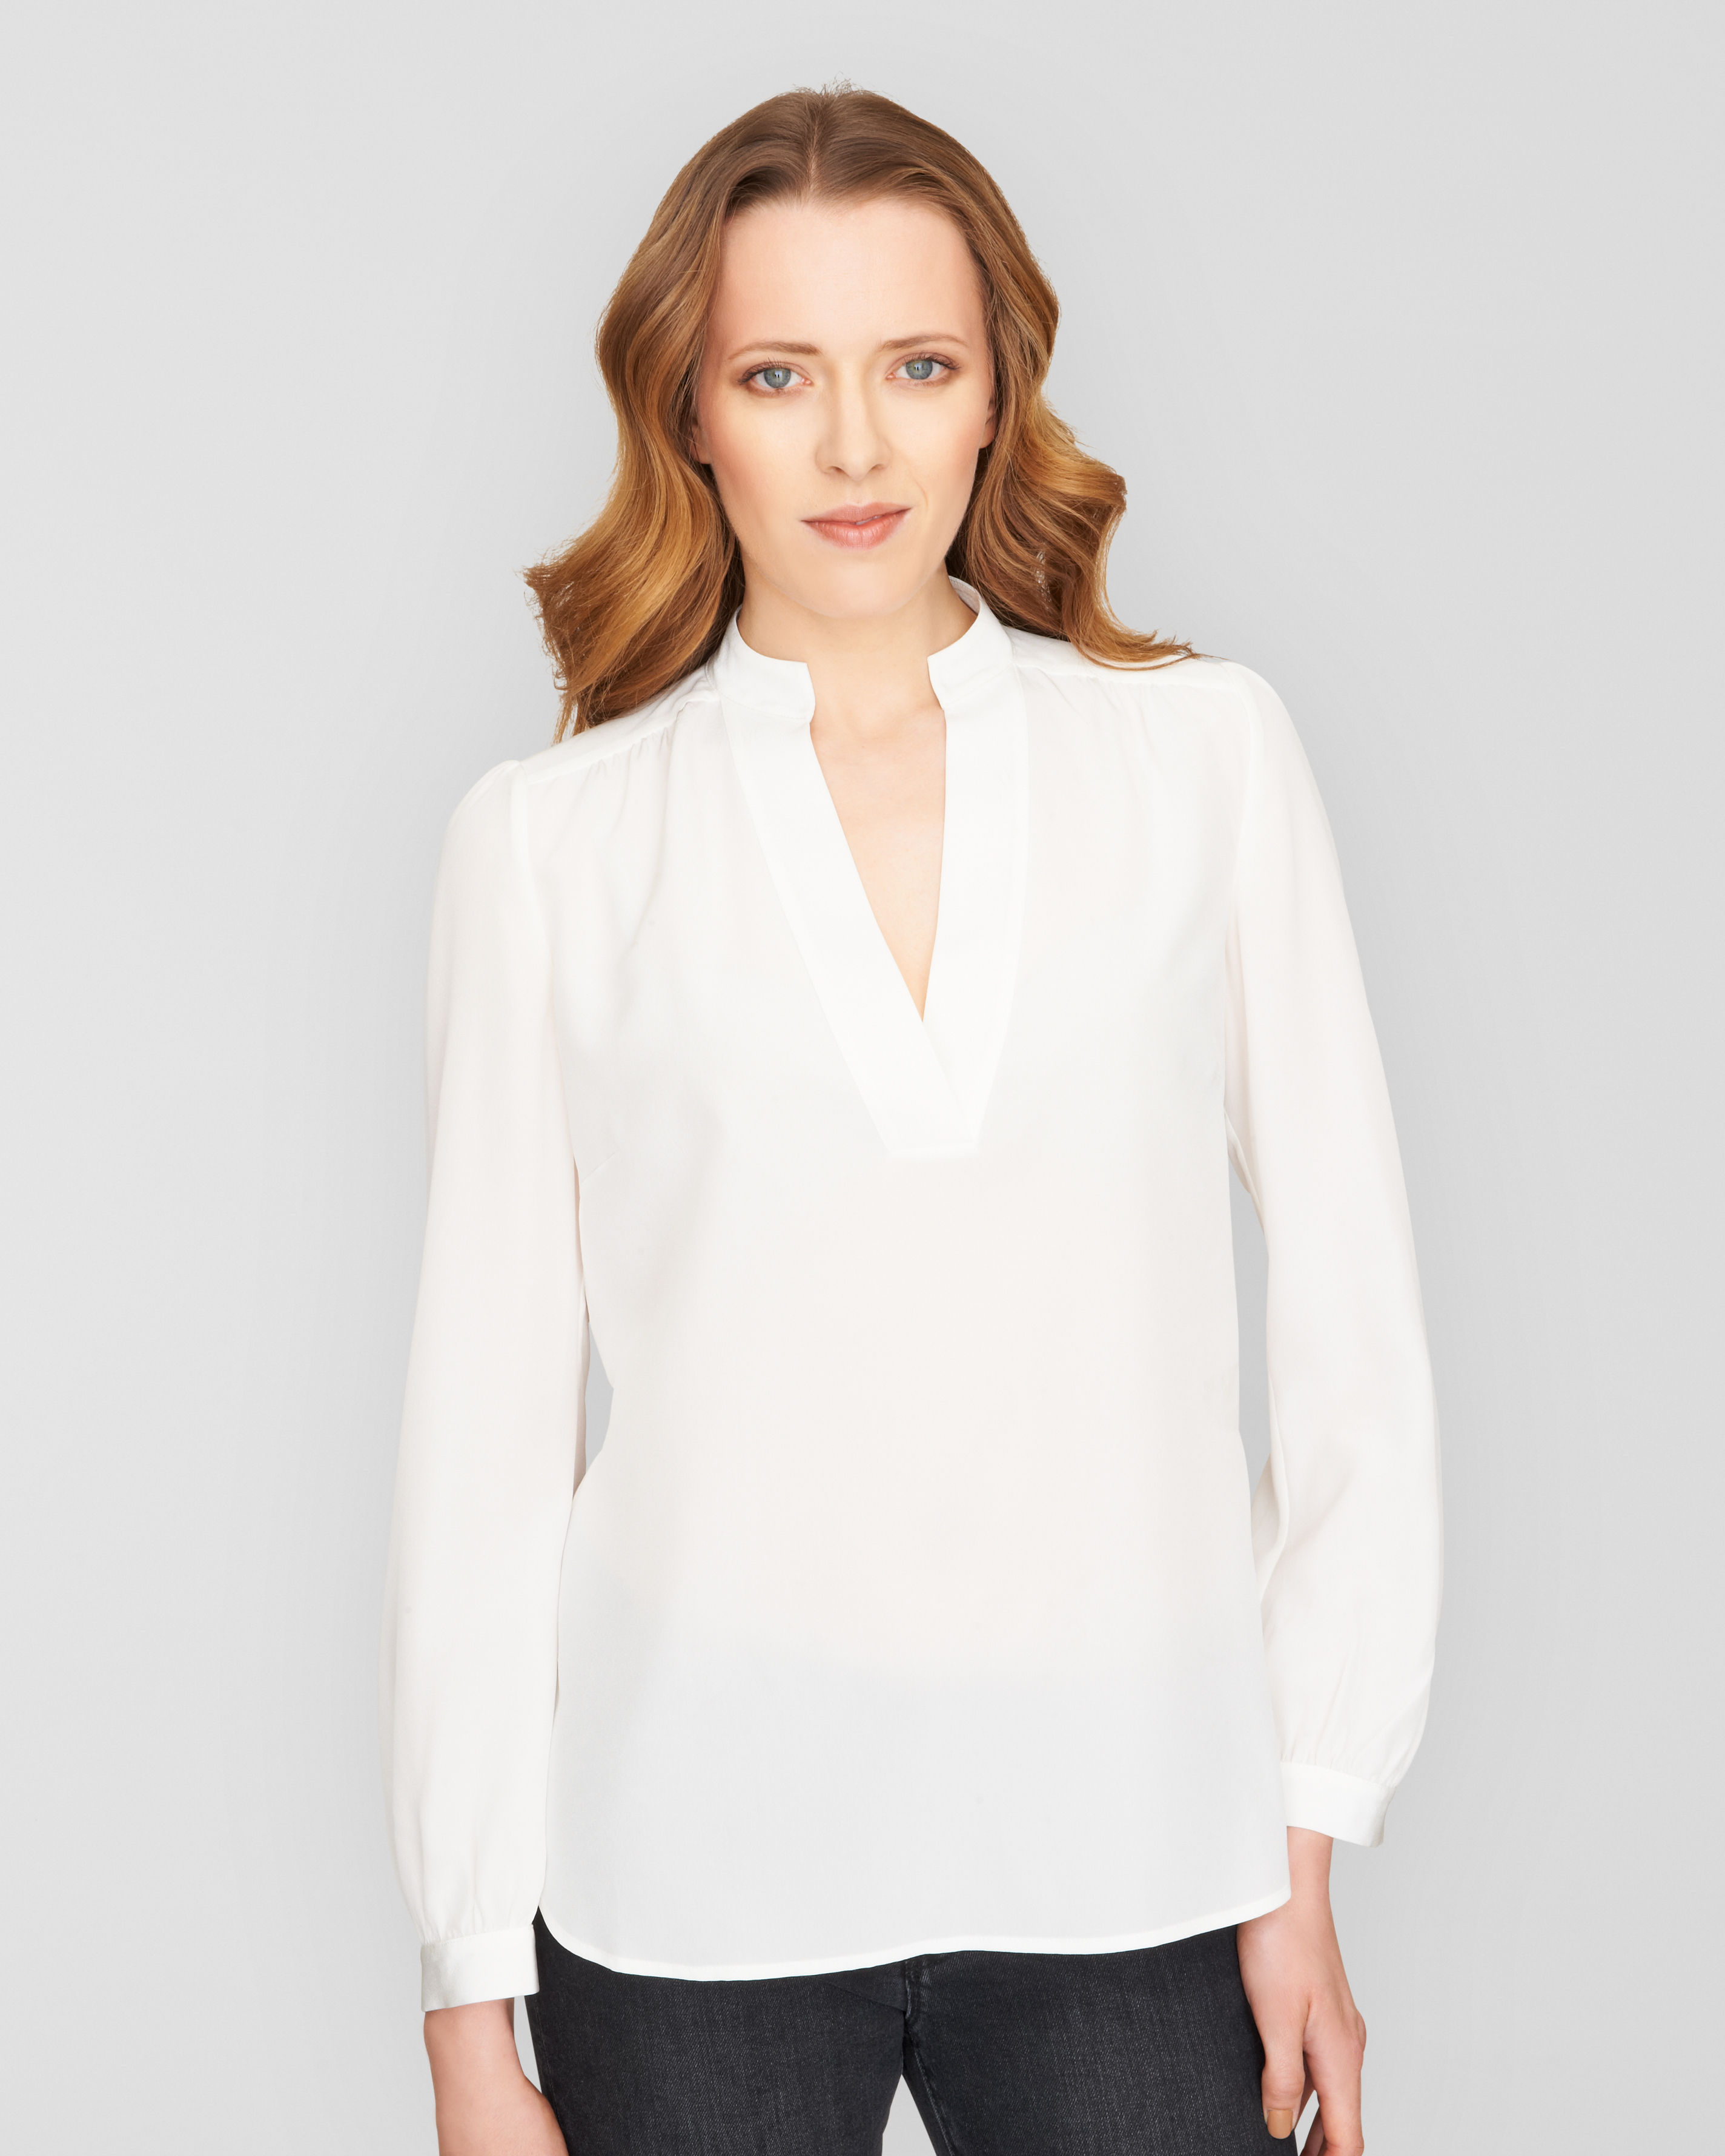 Blouse Stand Neck Designs : Lyst jaeger v neck stand collar blouse in white